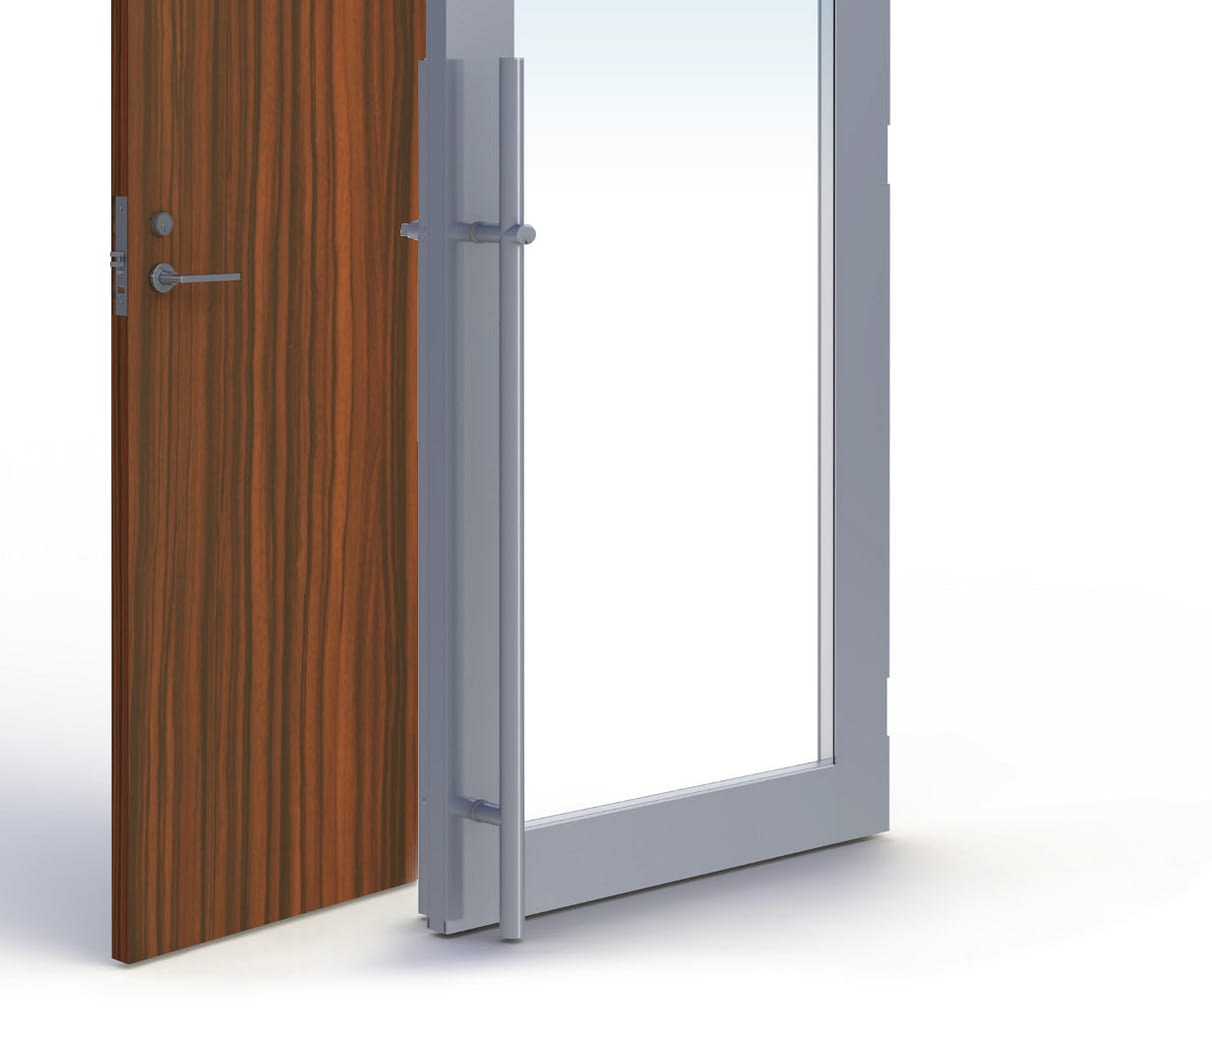 Commercial Glass PartitionDoors & Hardware - Toronto Suppliers